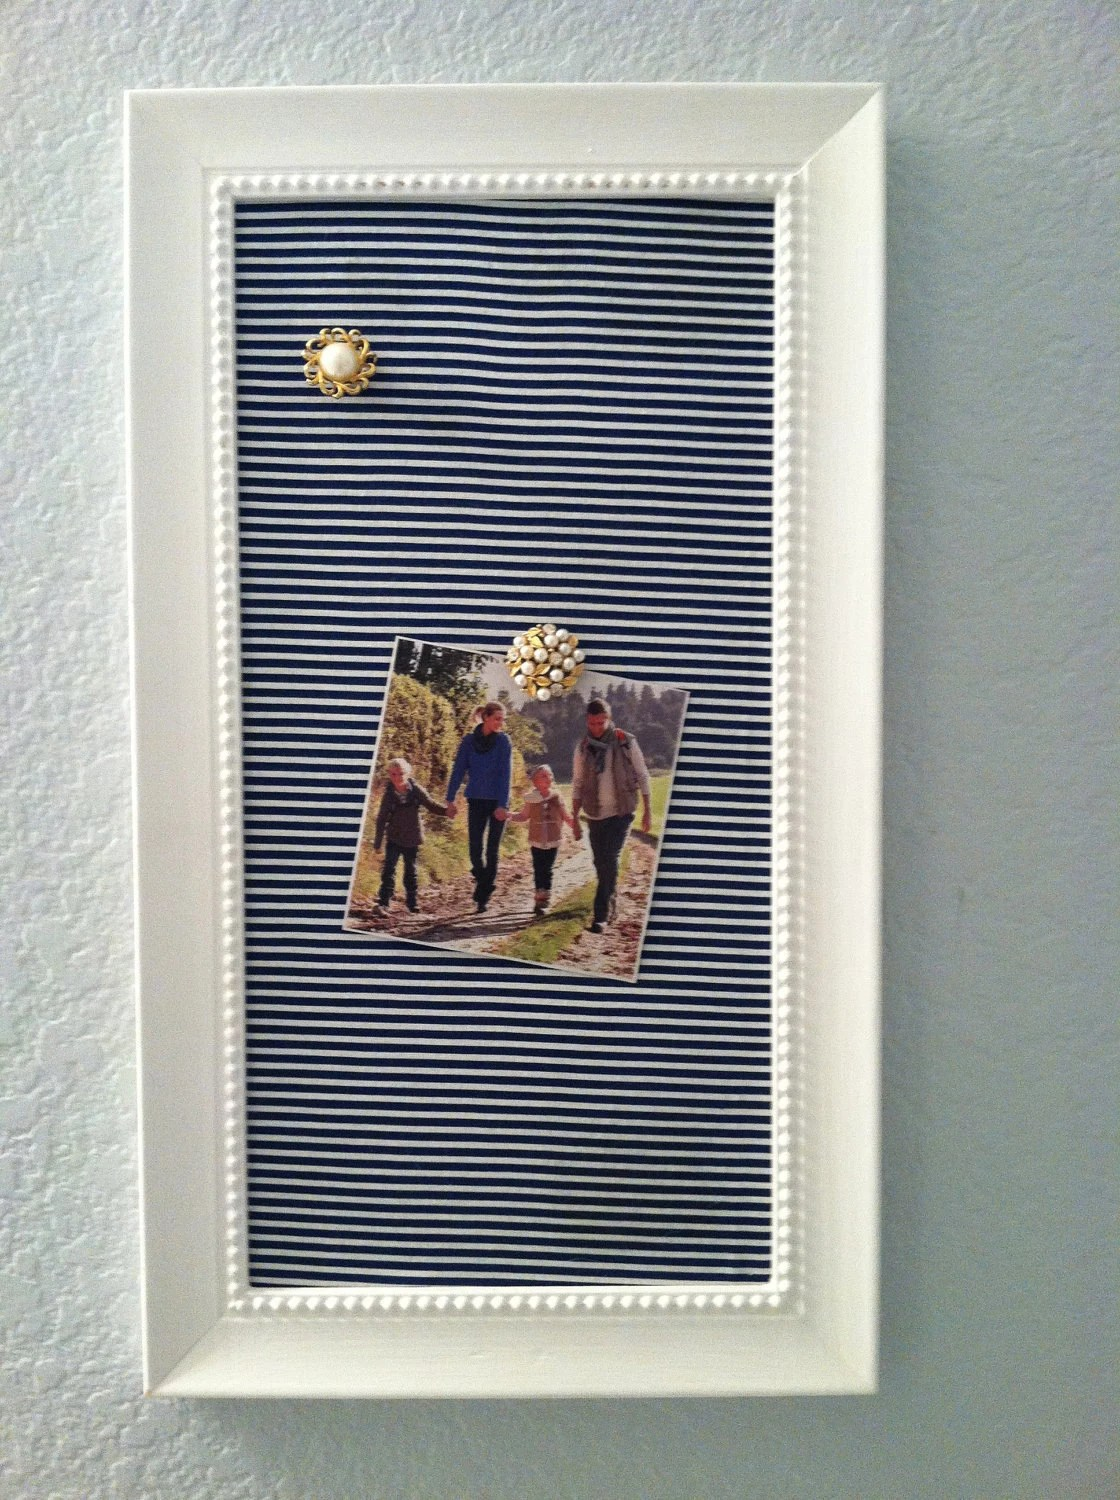 Best Decorative Magnetic Memo Board With By Texasfarmersdaughter This Month